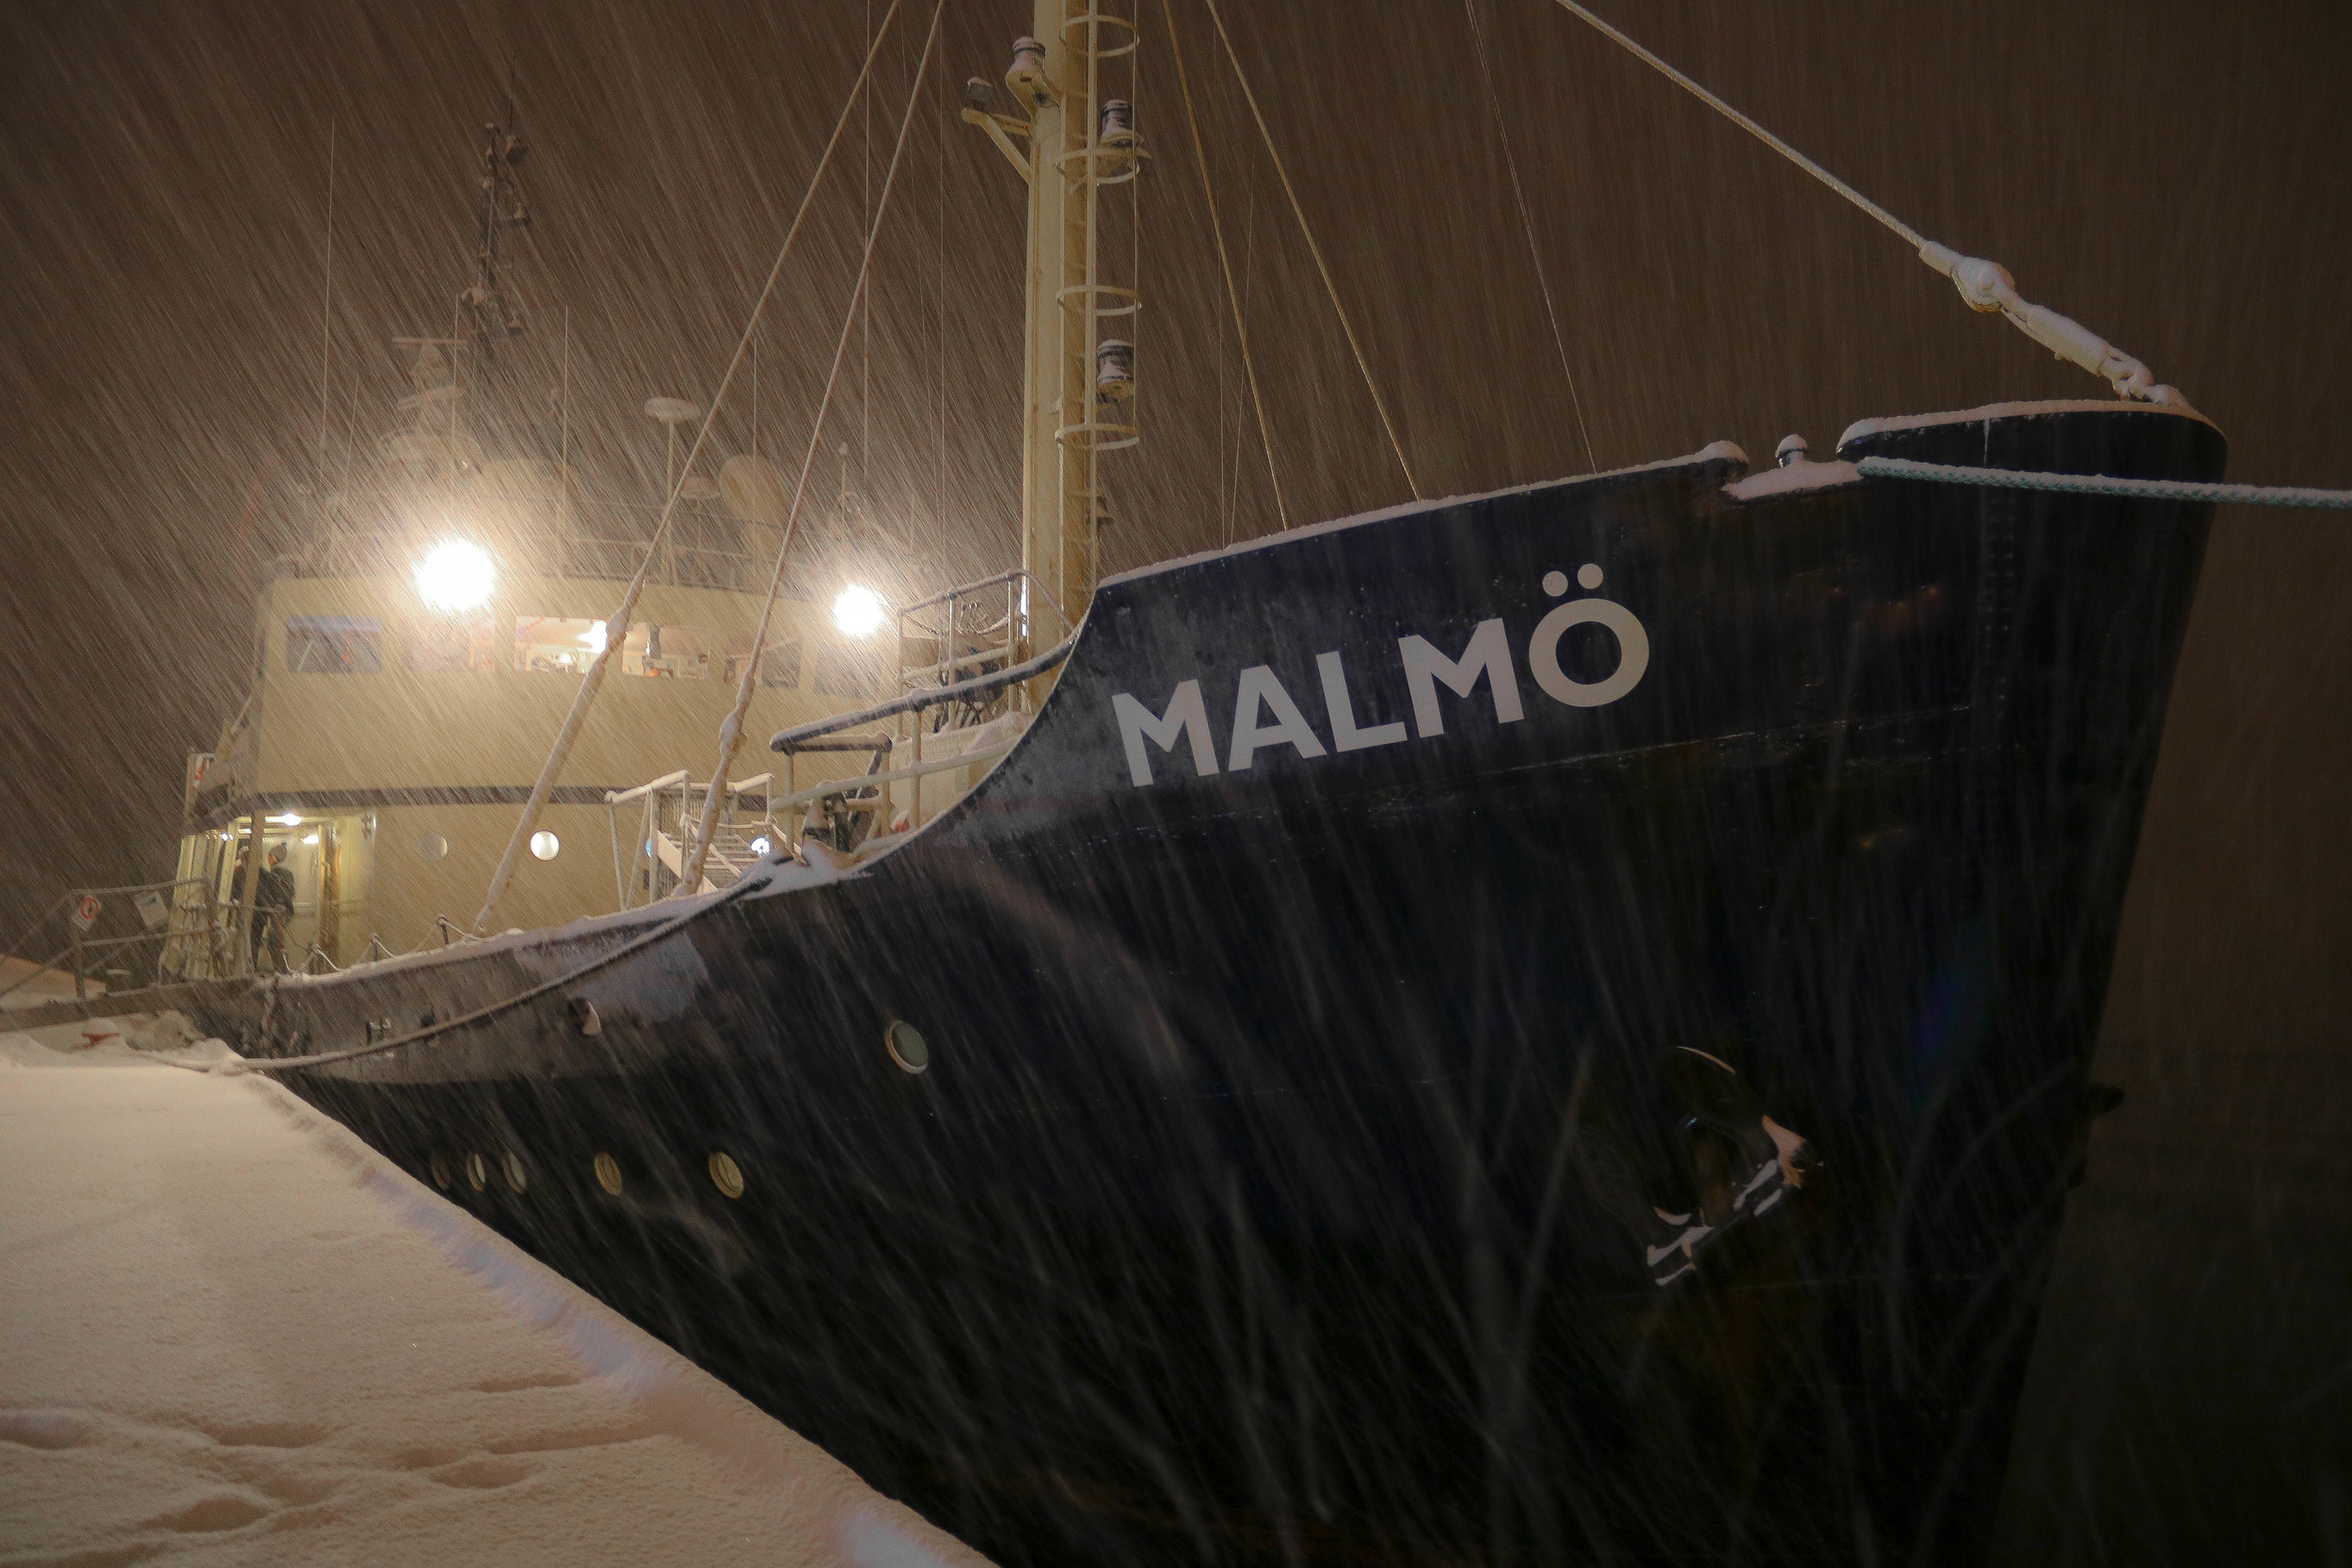 The Malmö in the port of Narvik.